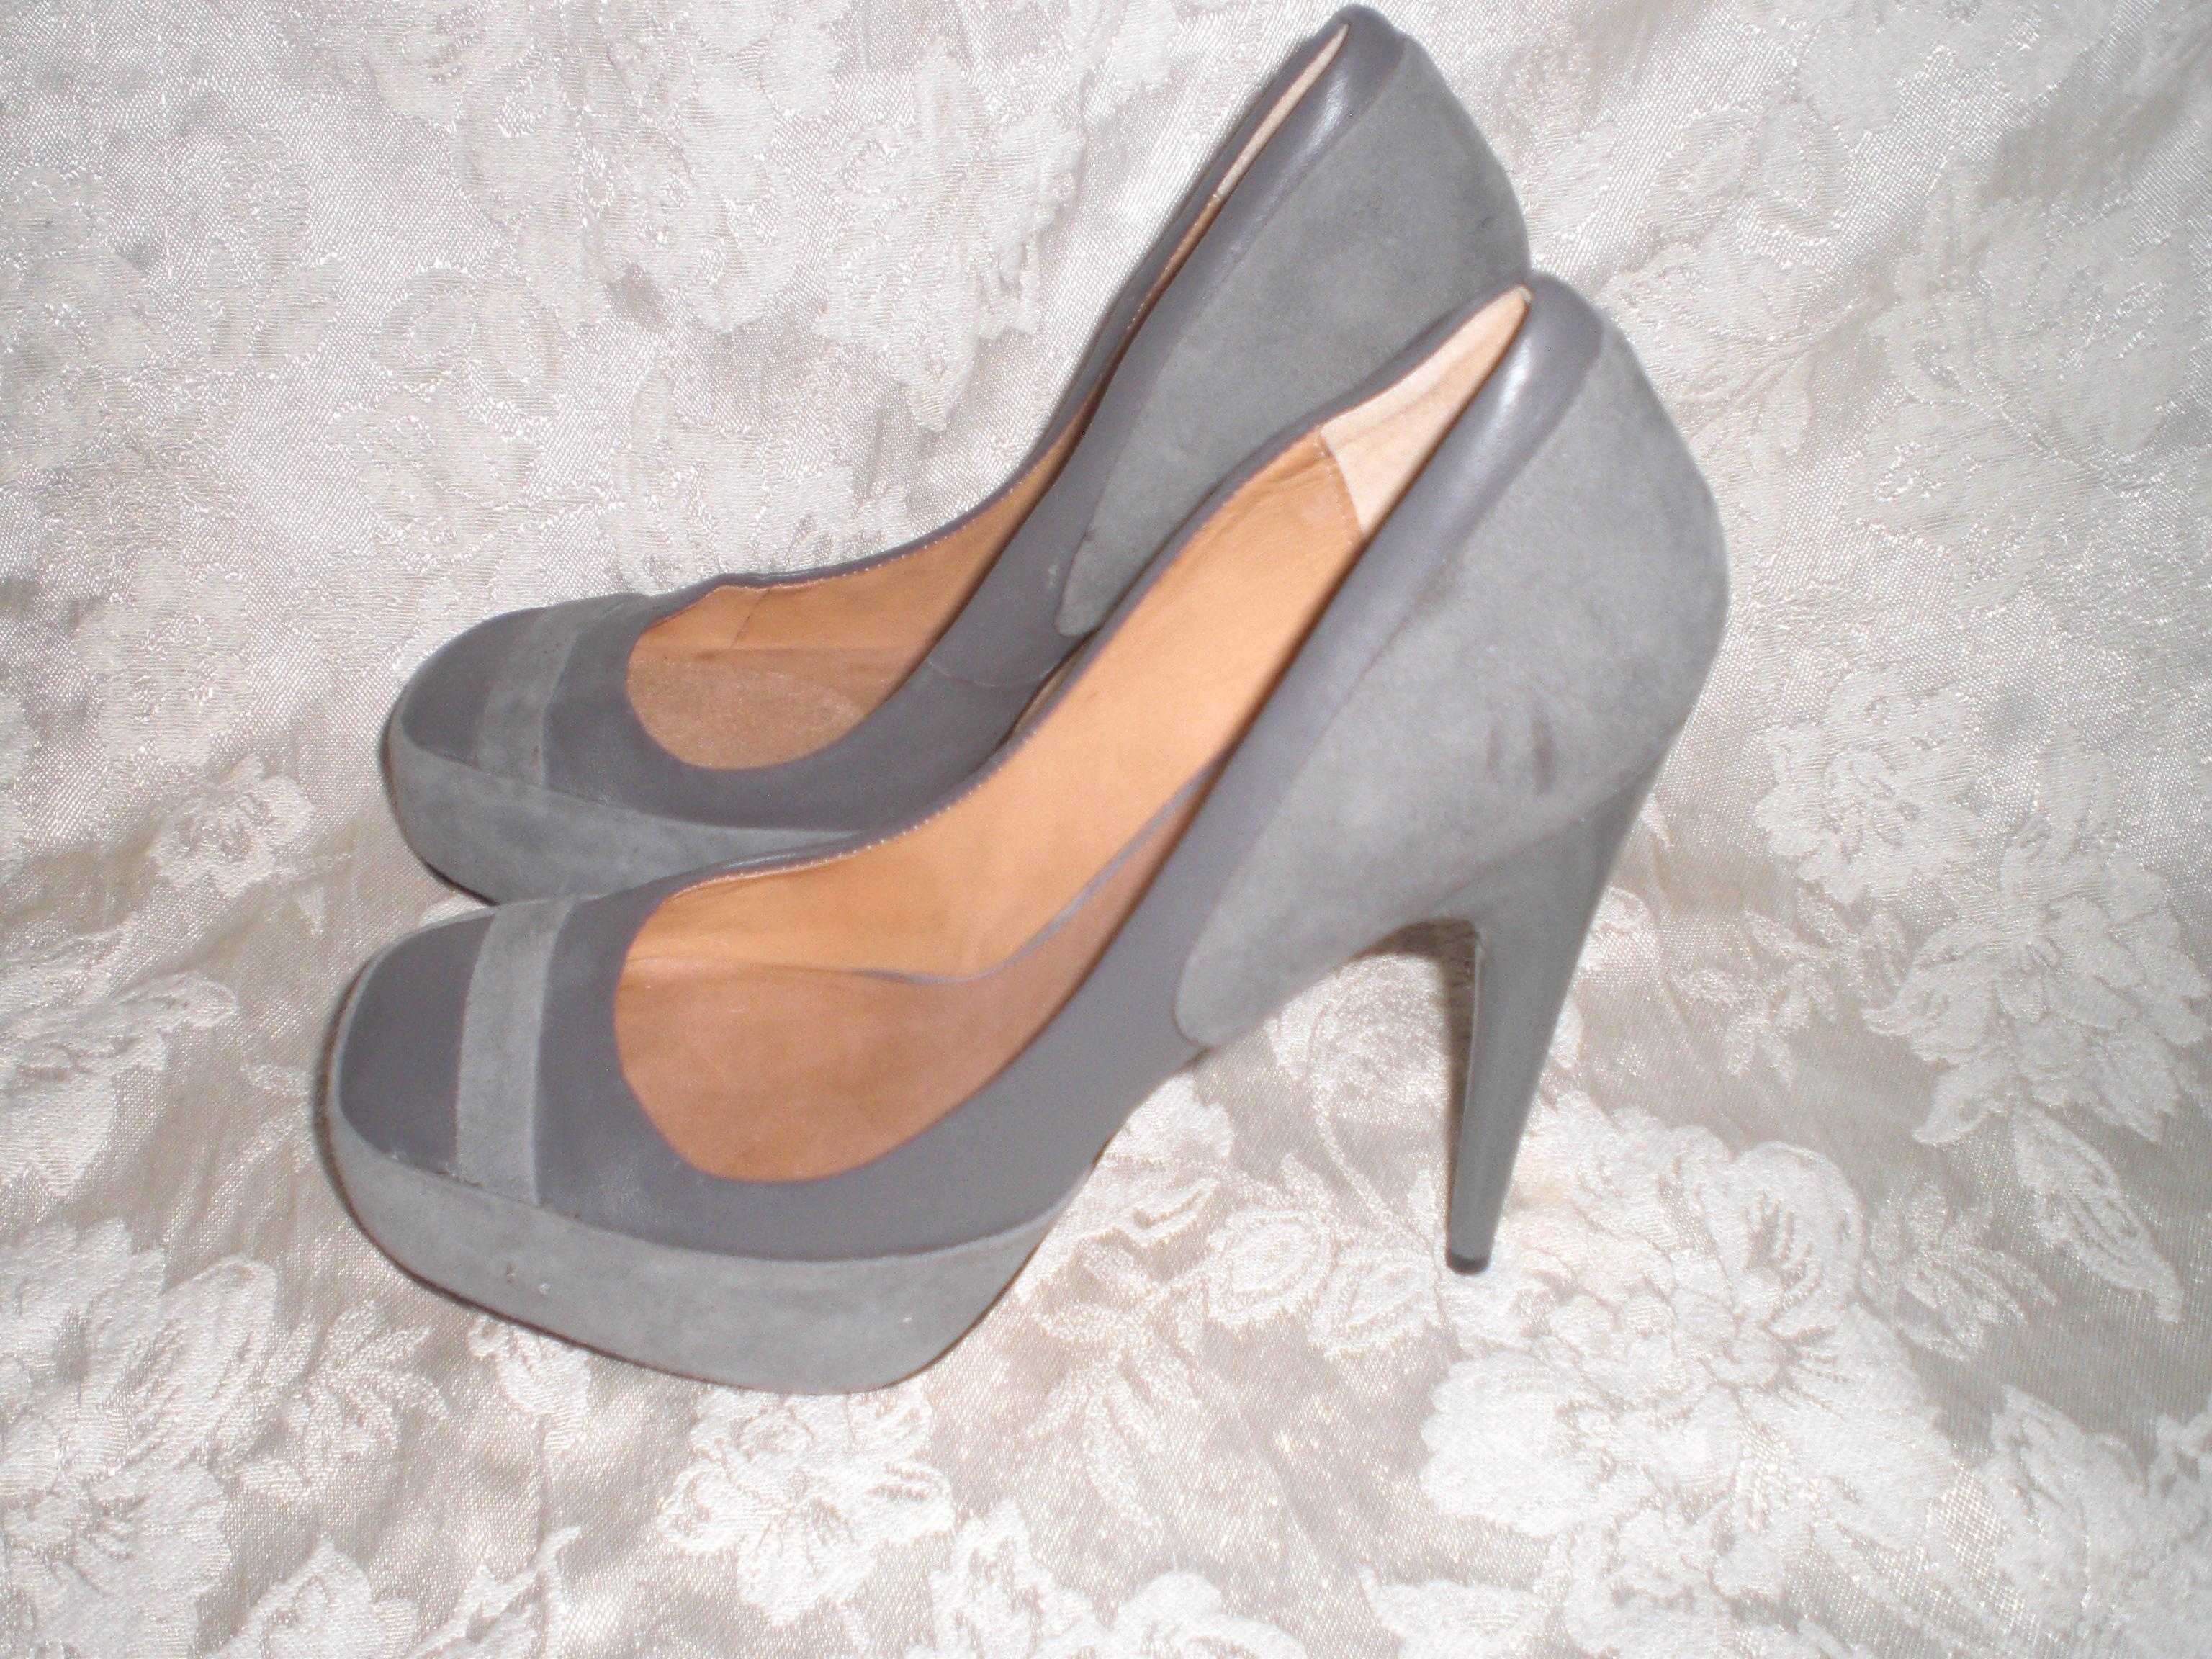 LAMB Whipstitch Platform Pumps for sale for sale where can i order outlet new arrival r6DfR8pp9